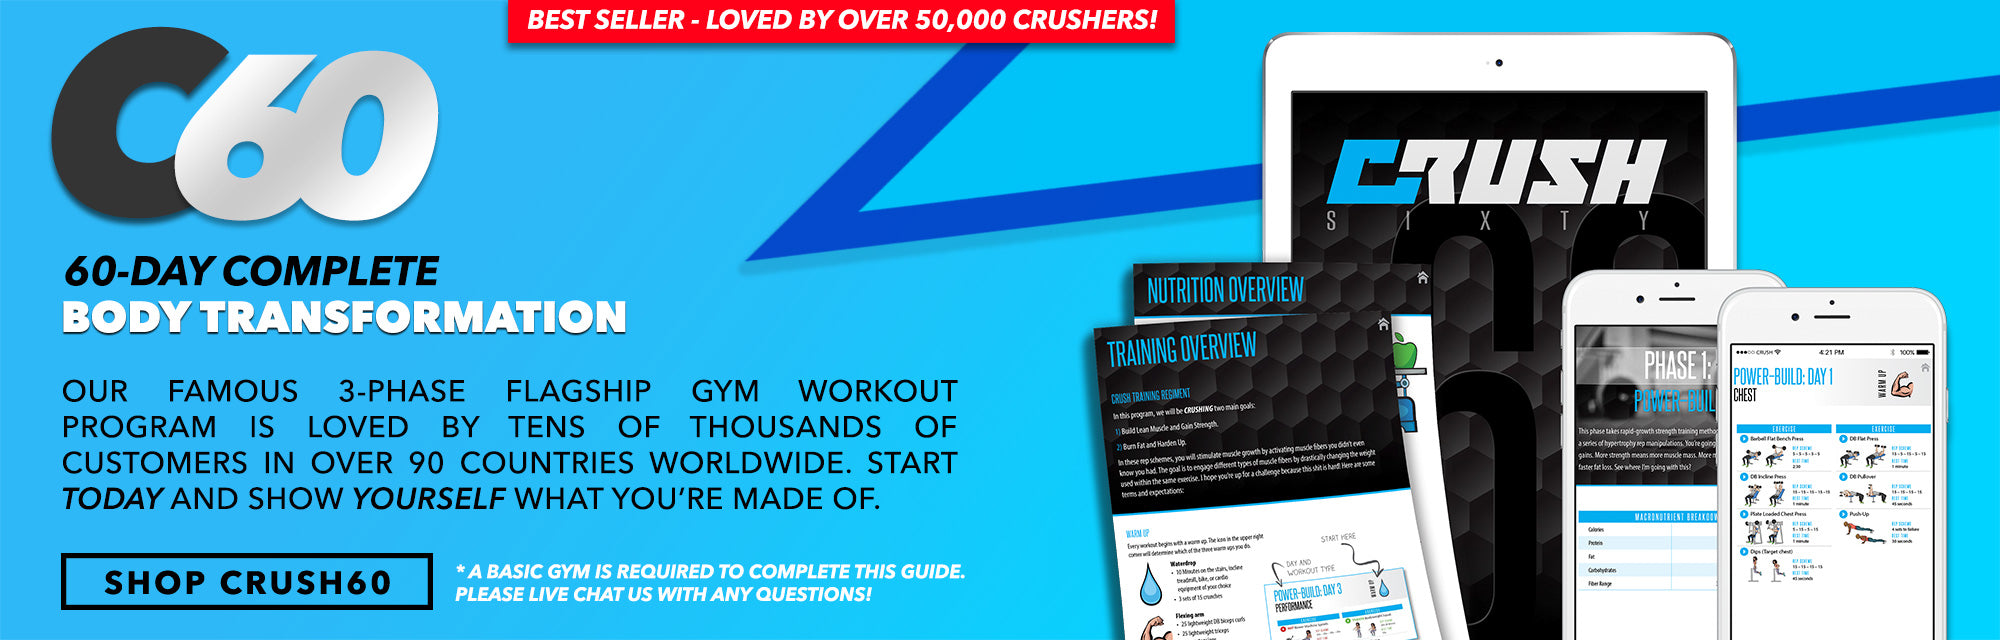 CRUSH60 WORKOUT GUIDE BEN WILLIAMSON CRUSH FIT